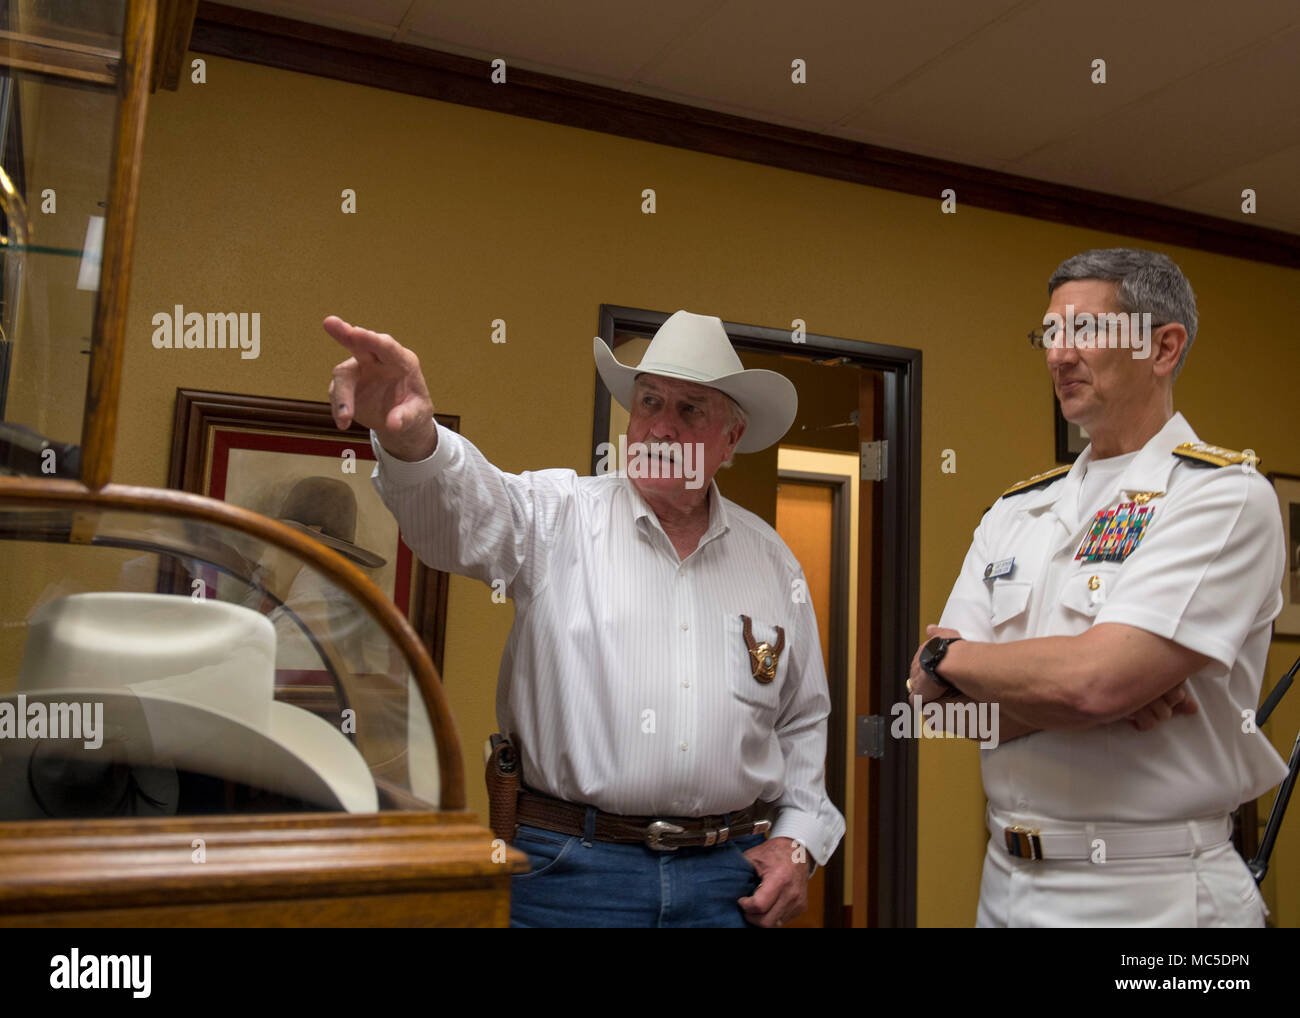 County Sheriff Texas Stock Photos & County Sheriff Texas